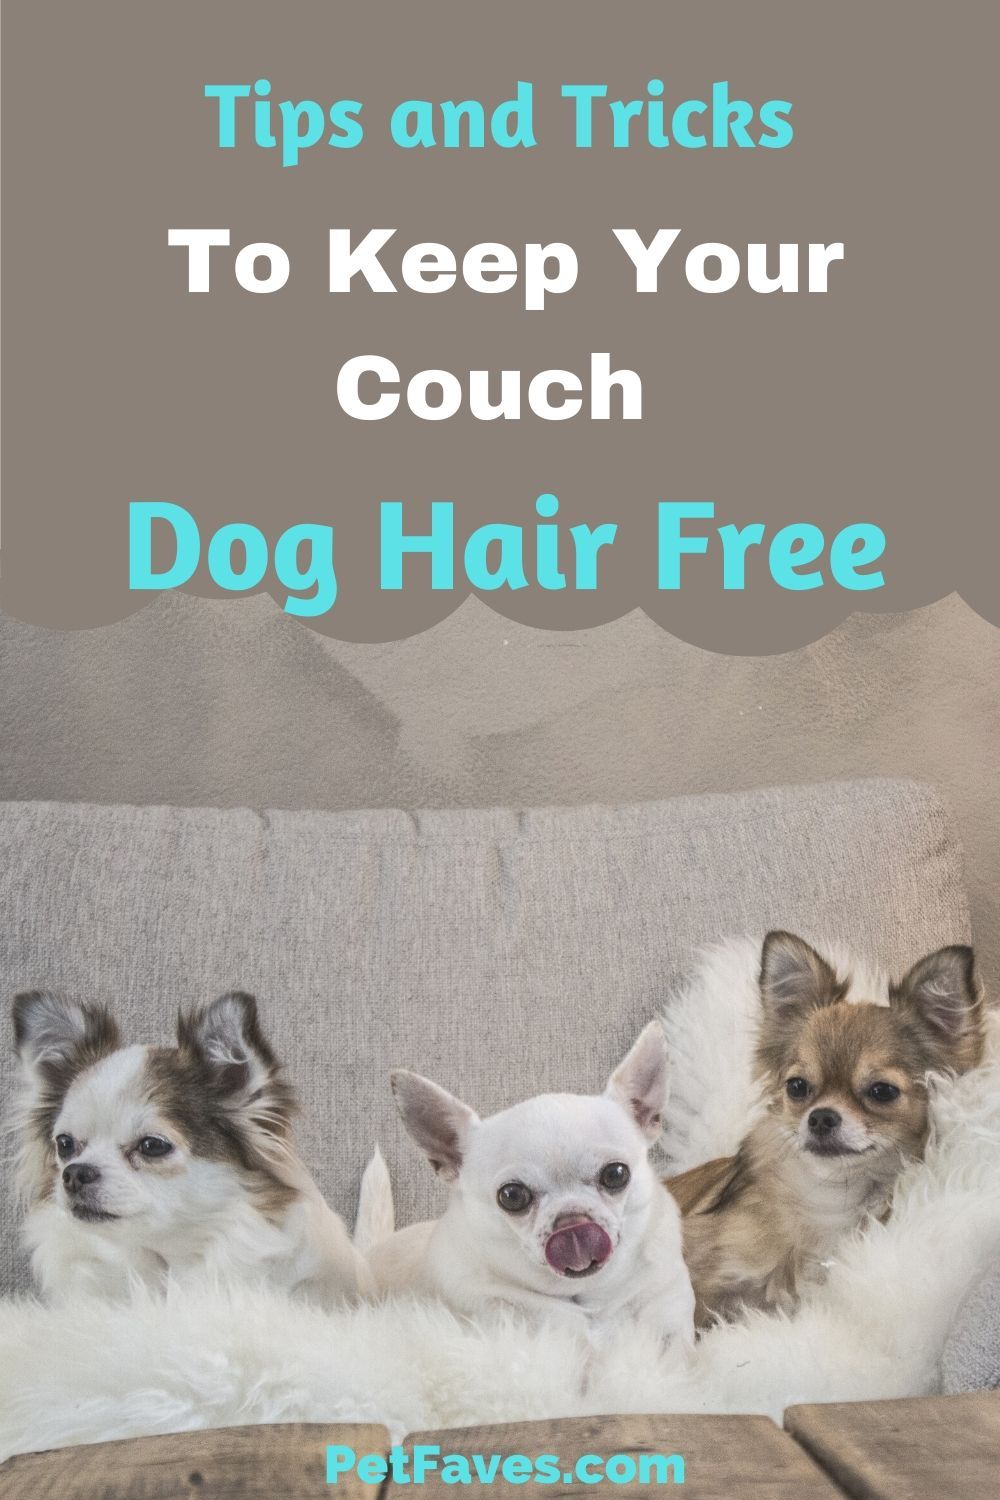 How To Get Dog Hair Off Of Bed Sheets